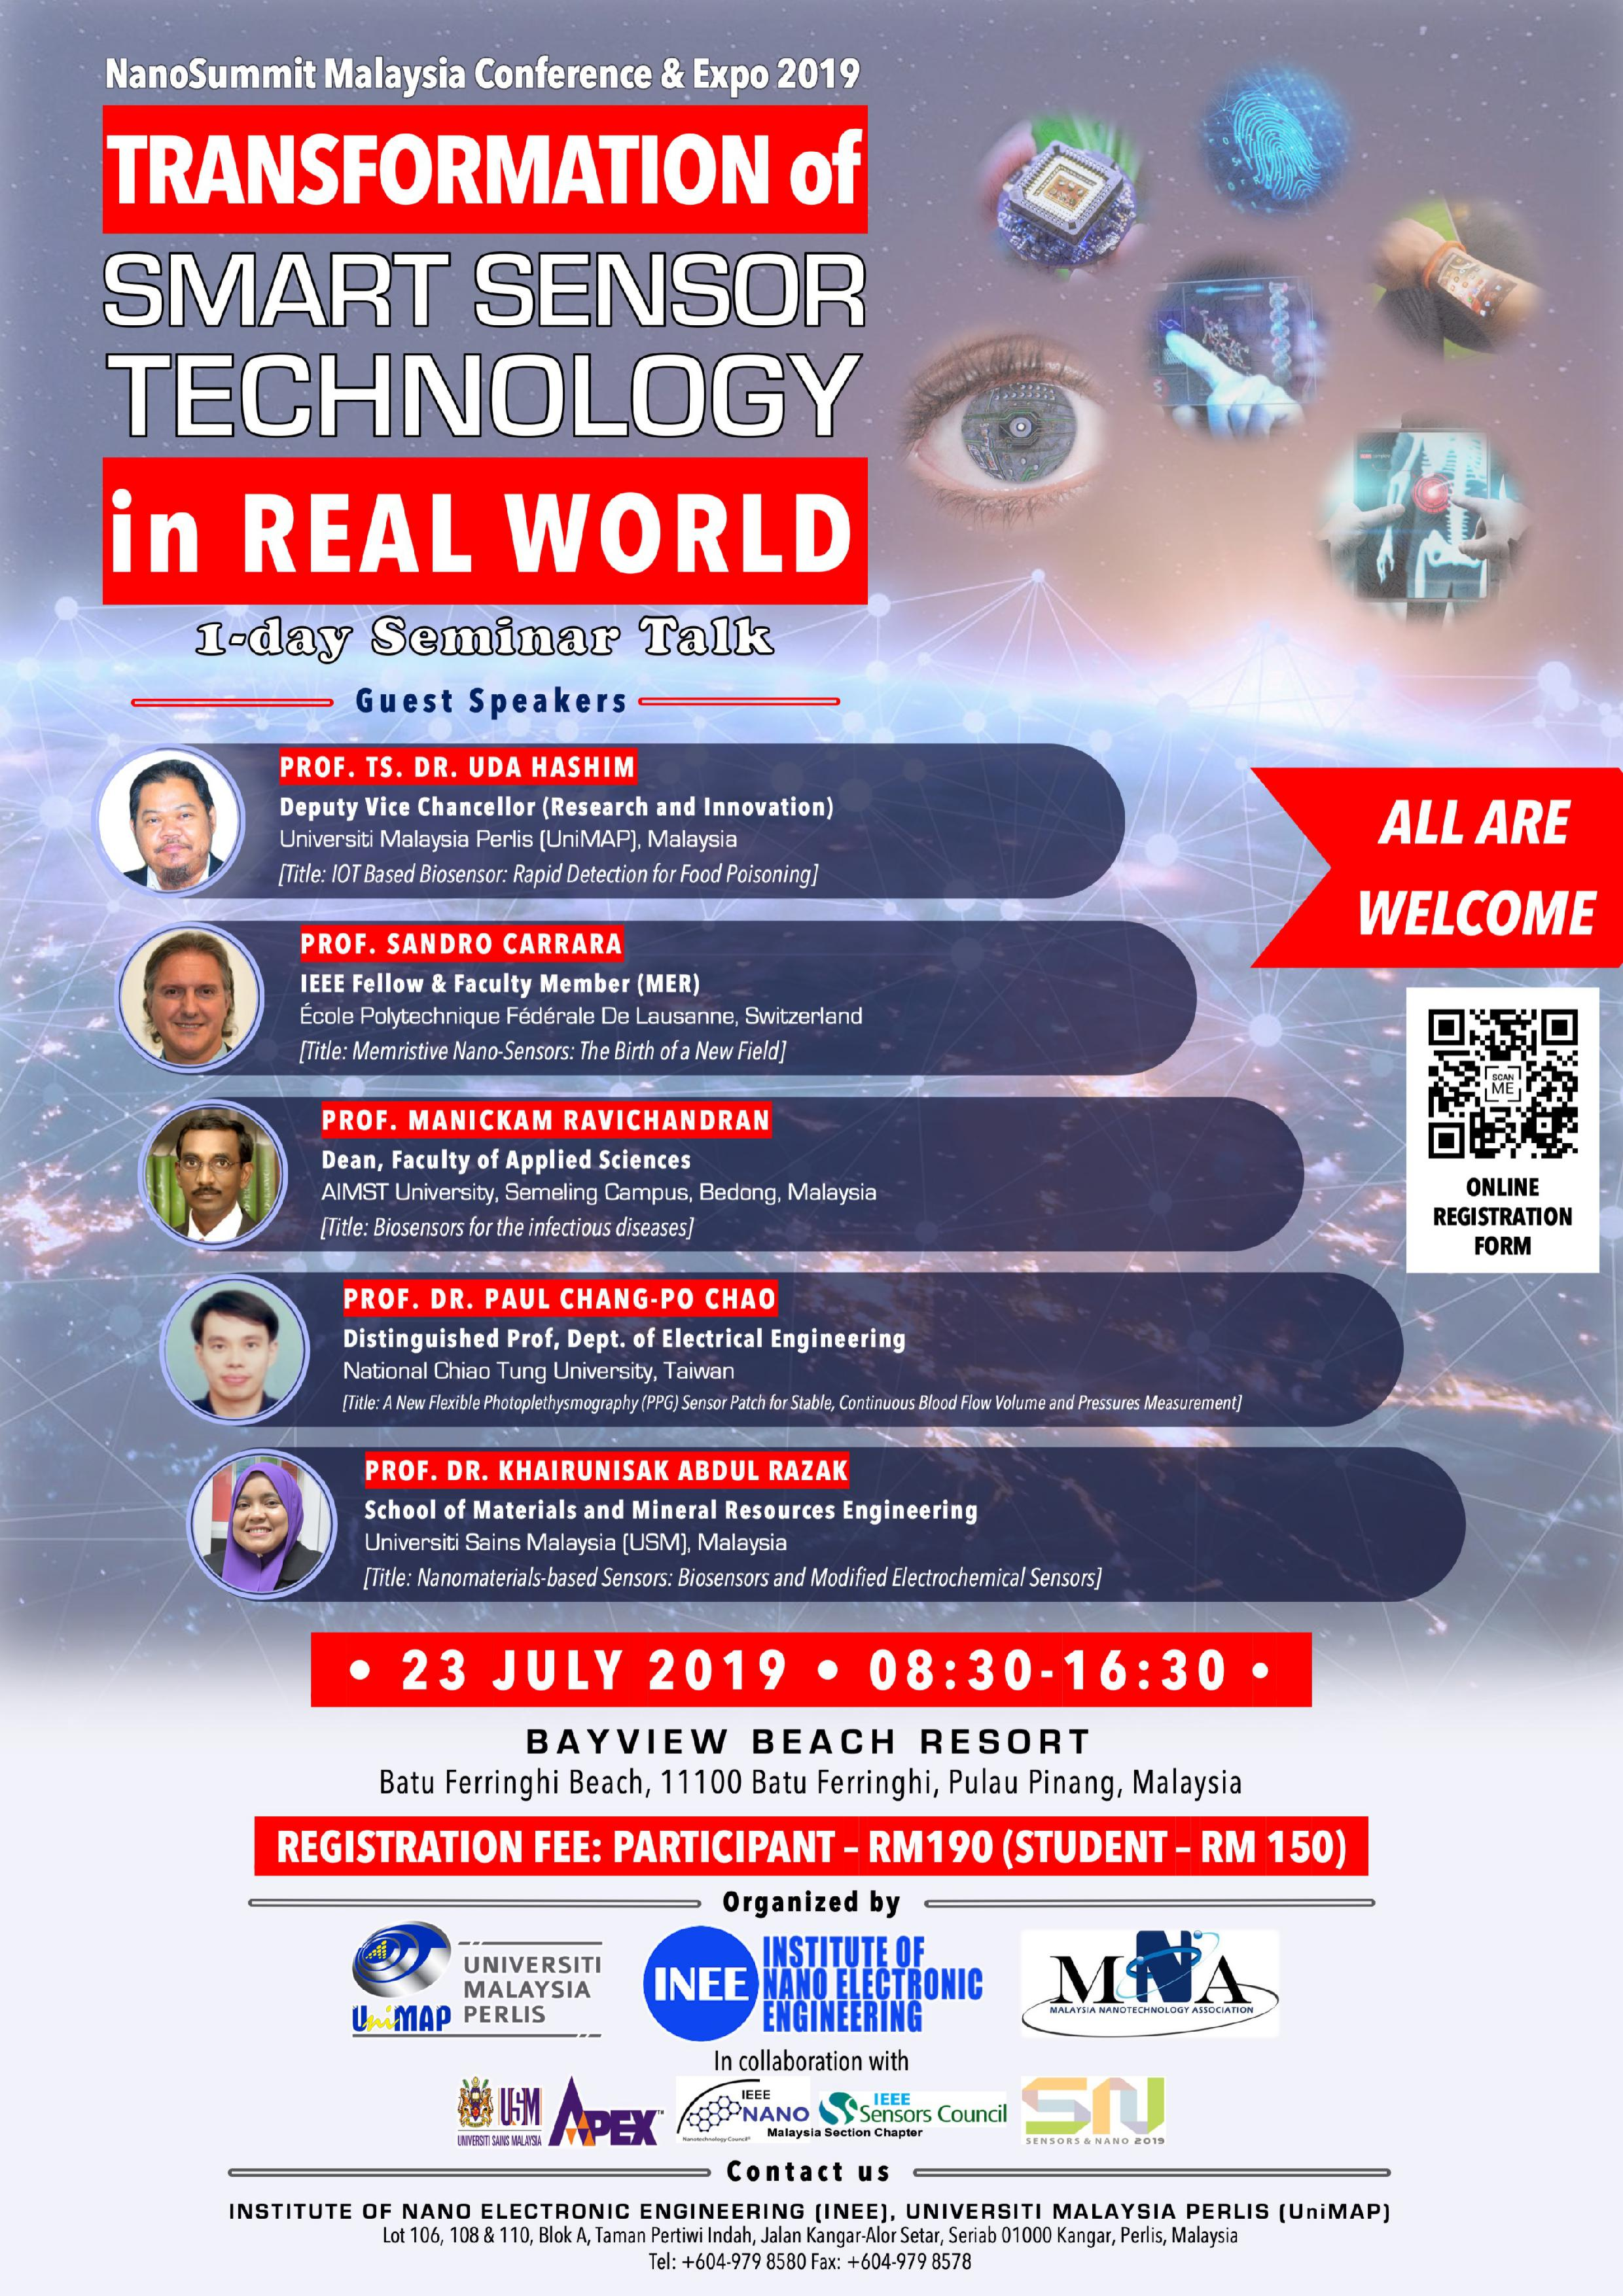 1-DAY SEMINAR TALK ON TRANSFORMATION OF SMART SENSOR TECHNOLOGY IN REAL WORLD